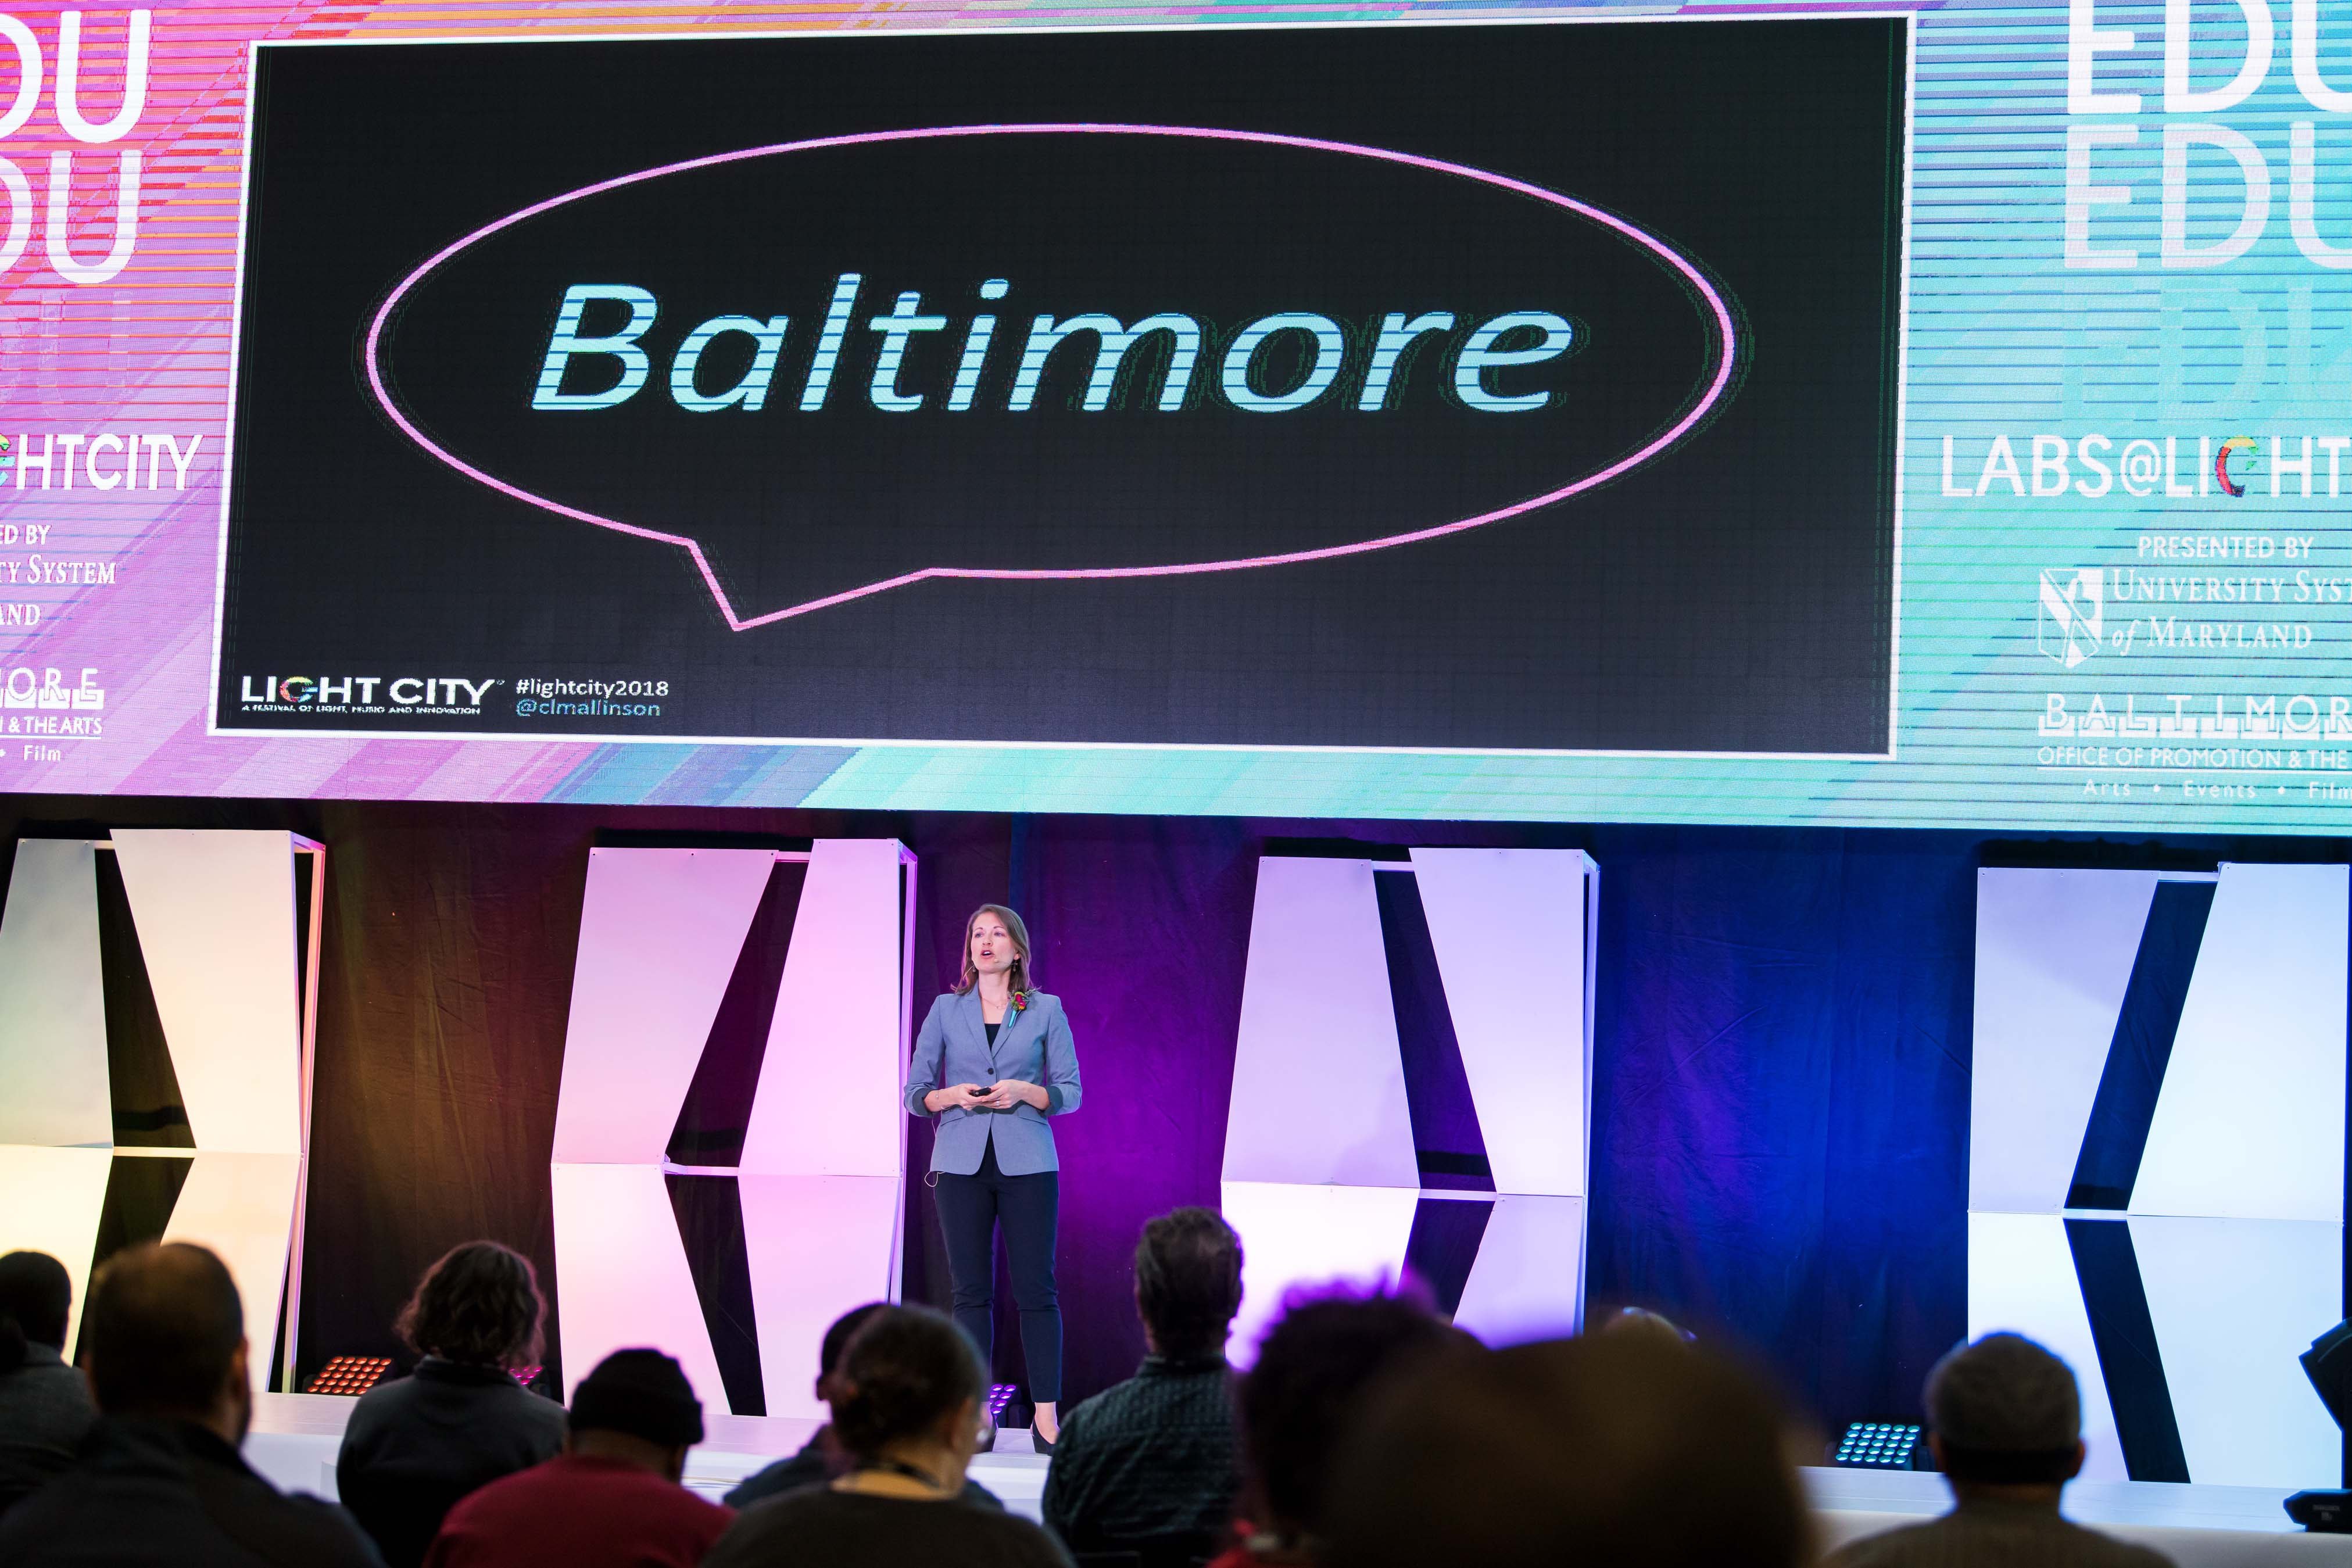 Woman stands on stage Baltimore on huge screen behind her